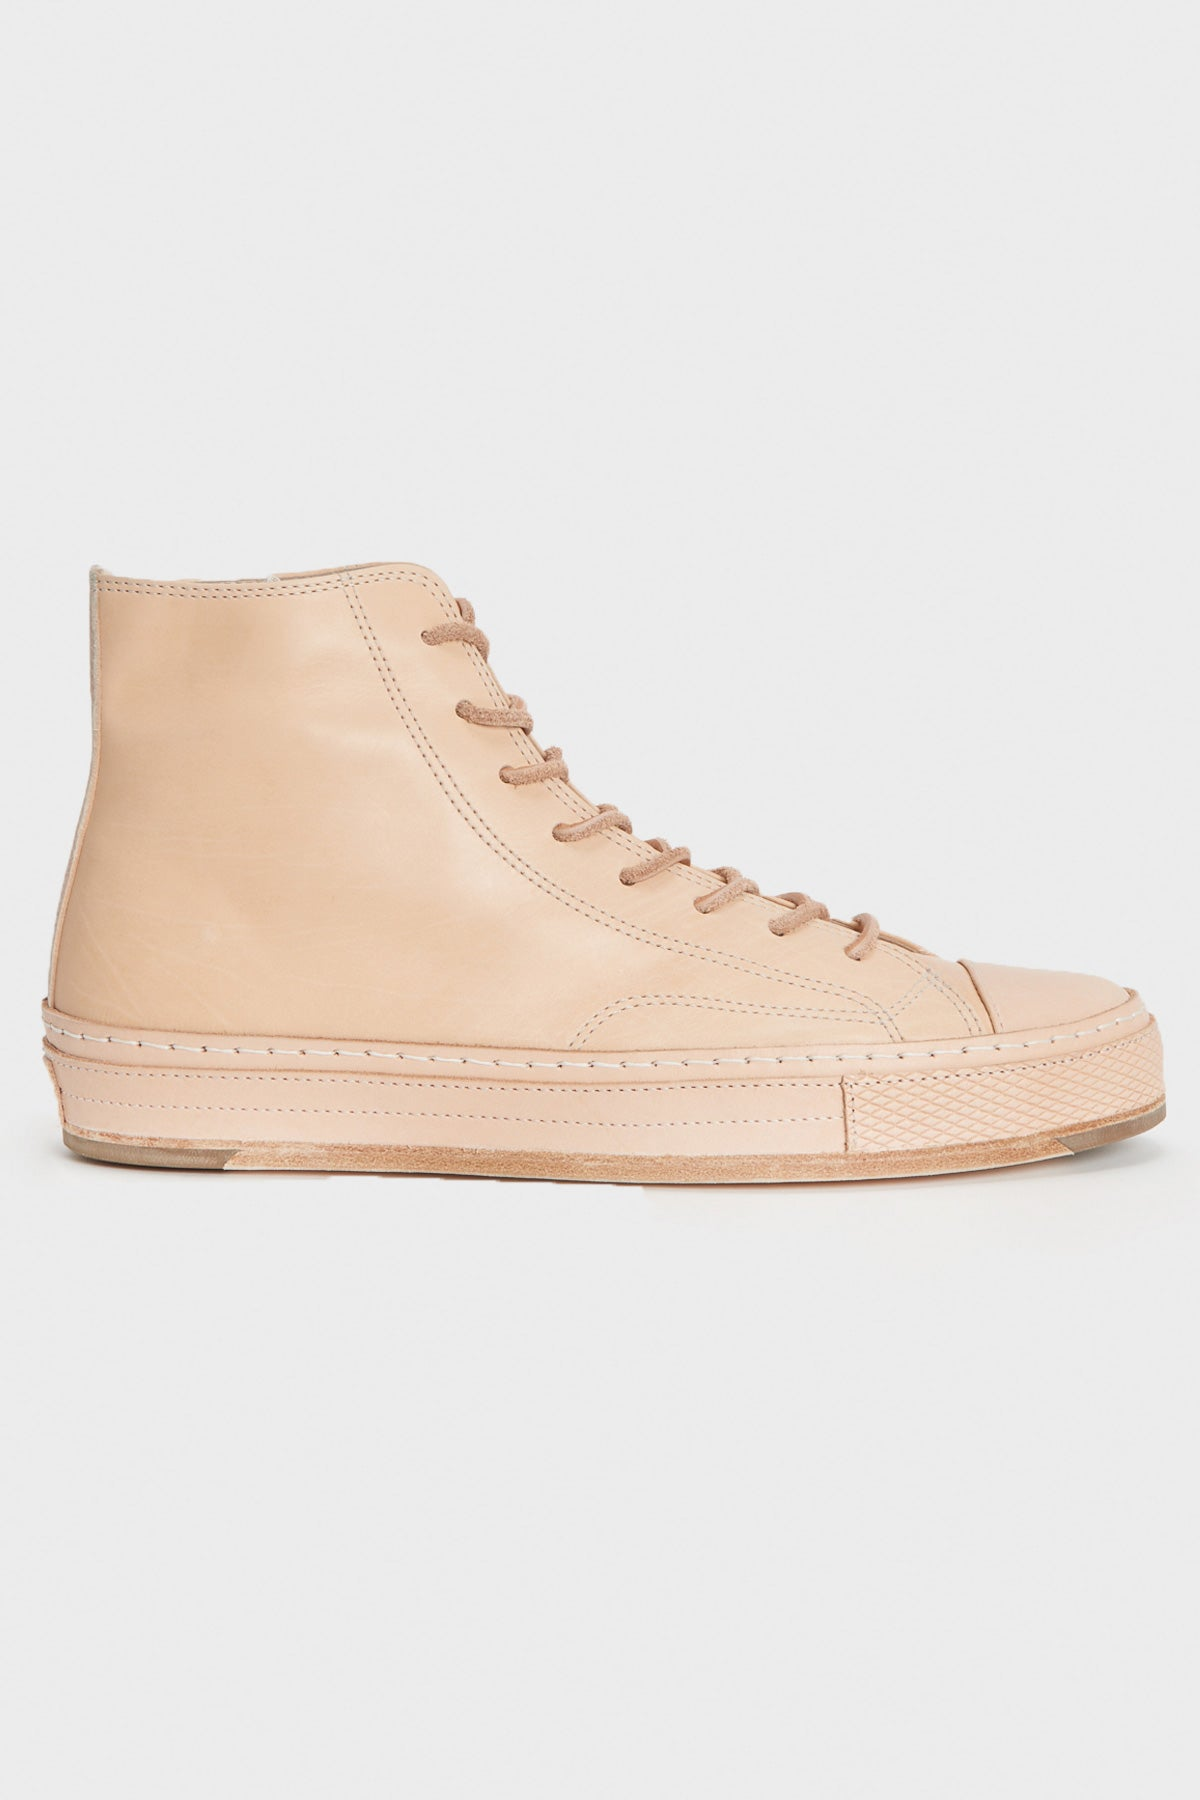 Hender Scheme - MIP-19 - Natural - Canoe Club